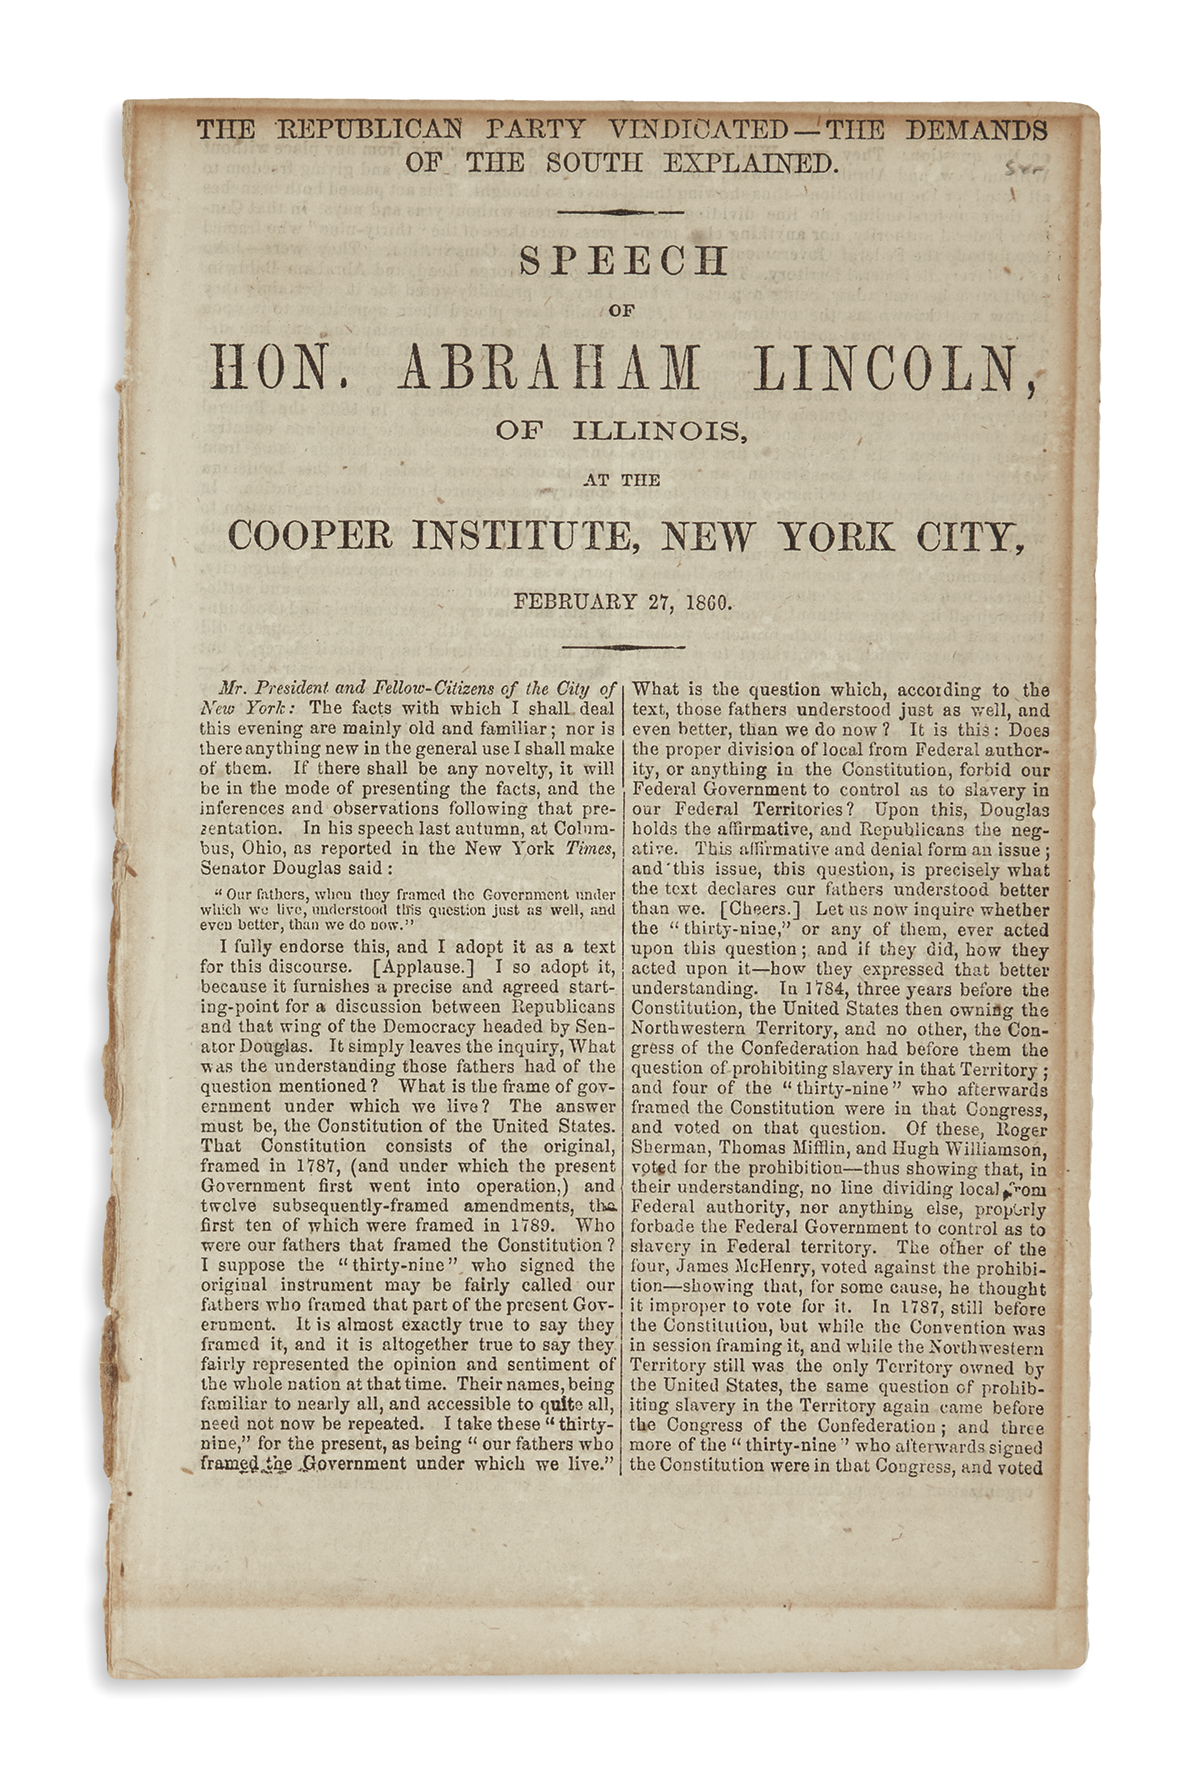 (BOOKS-AND-PAMPHLETS)-Lincoln-Abraham-The-Republican-Party-V